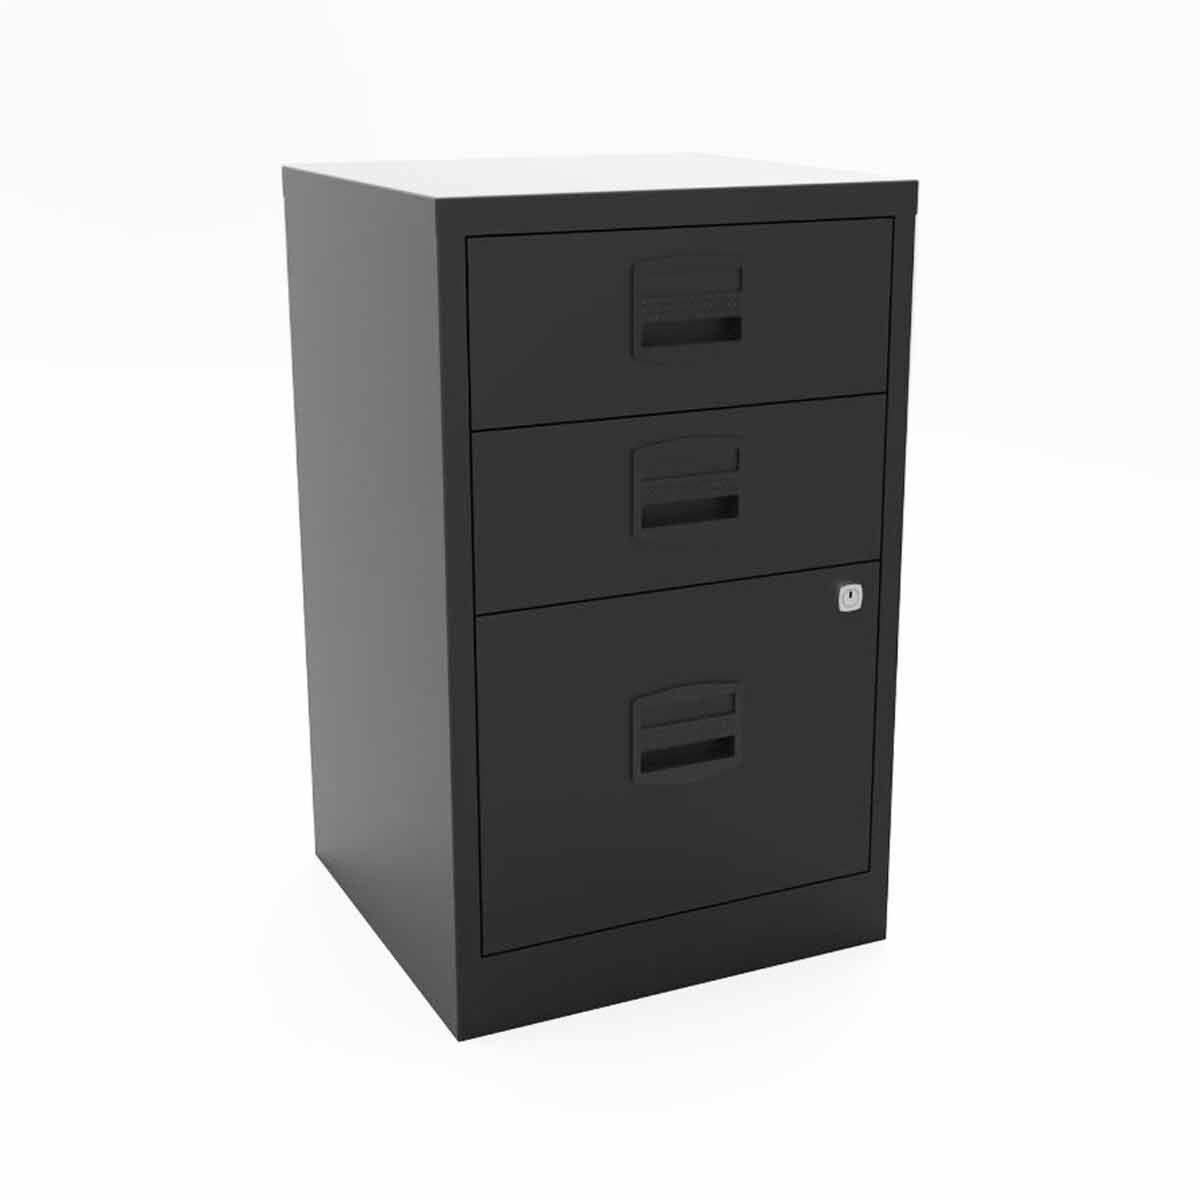 Bisley A4 3 Drawer Metal Stationery and Filing Cabinet Black